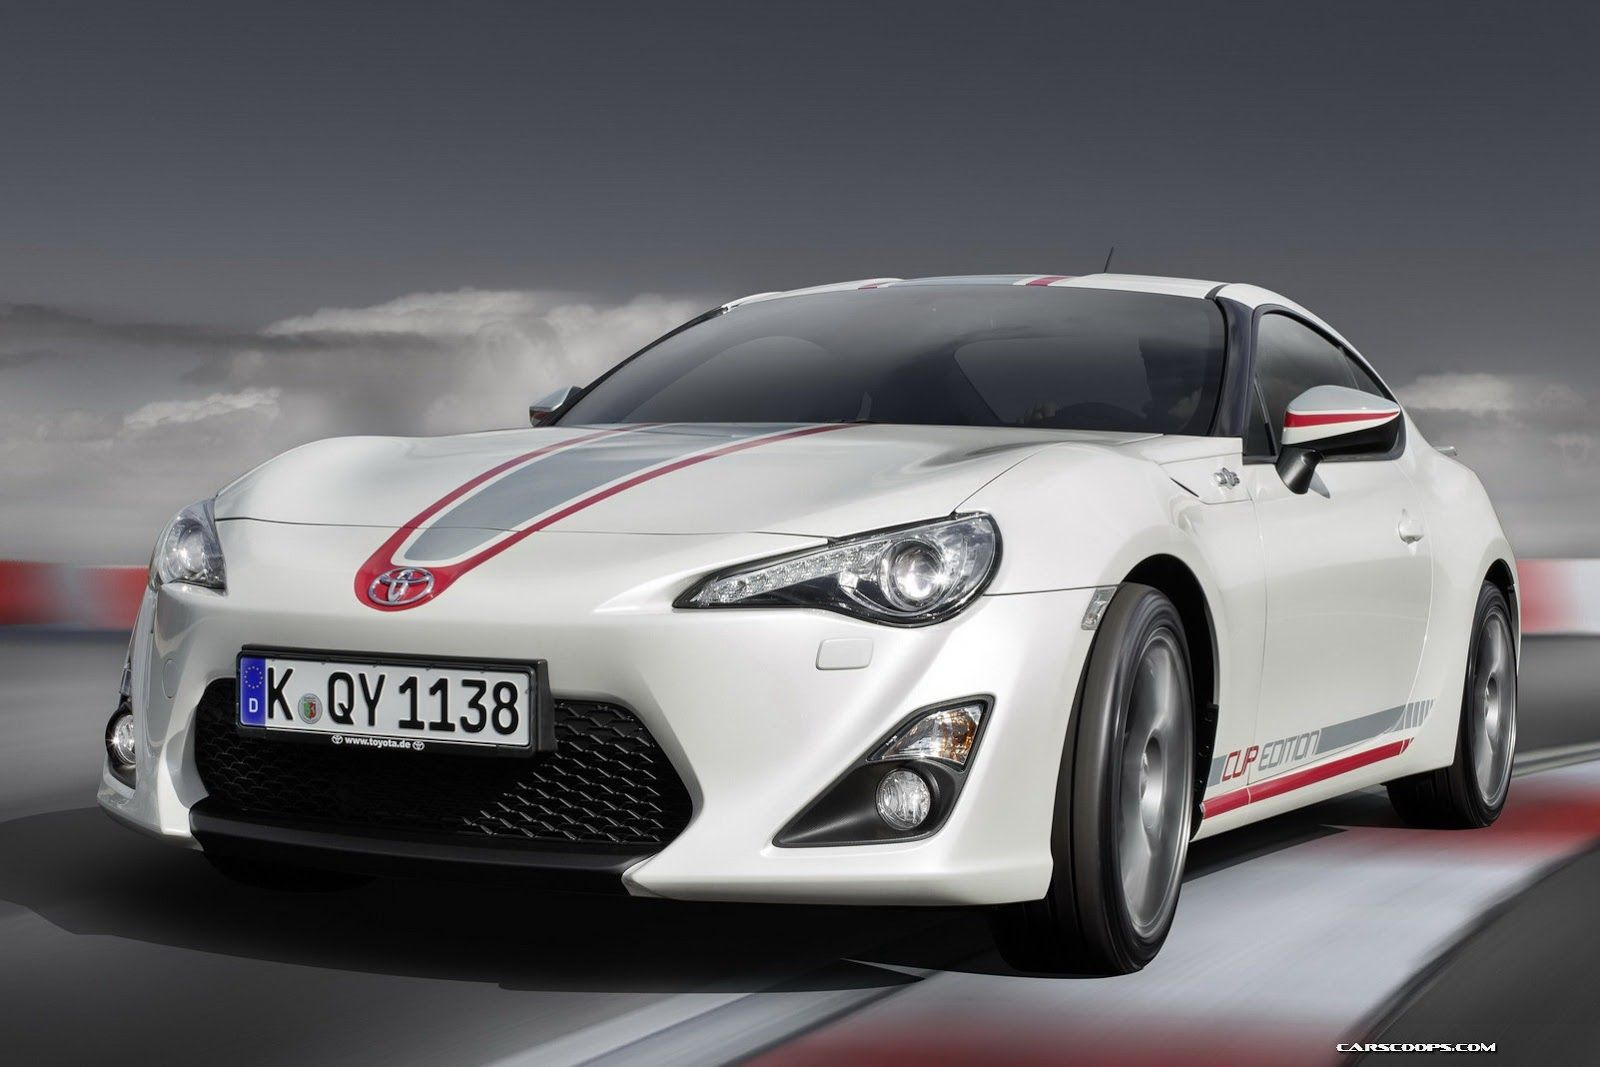 New Toyota Gt86 Cup Edition Gets Racing Stripes Alcantara Interior And A Vip Ticket To The Ring Carscoops Toyota Gt86 Toyota Cars Toyota